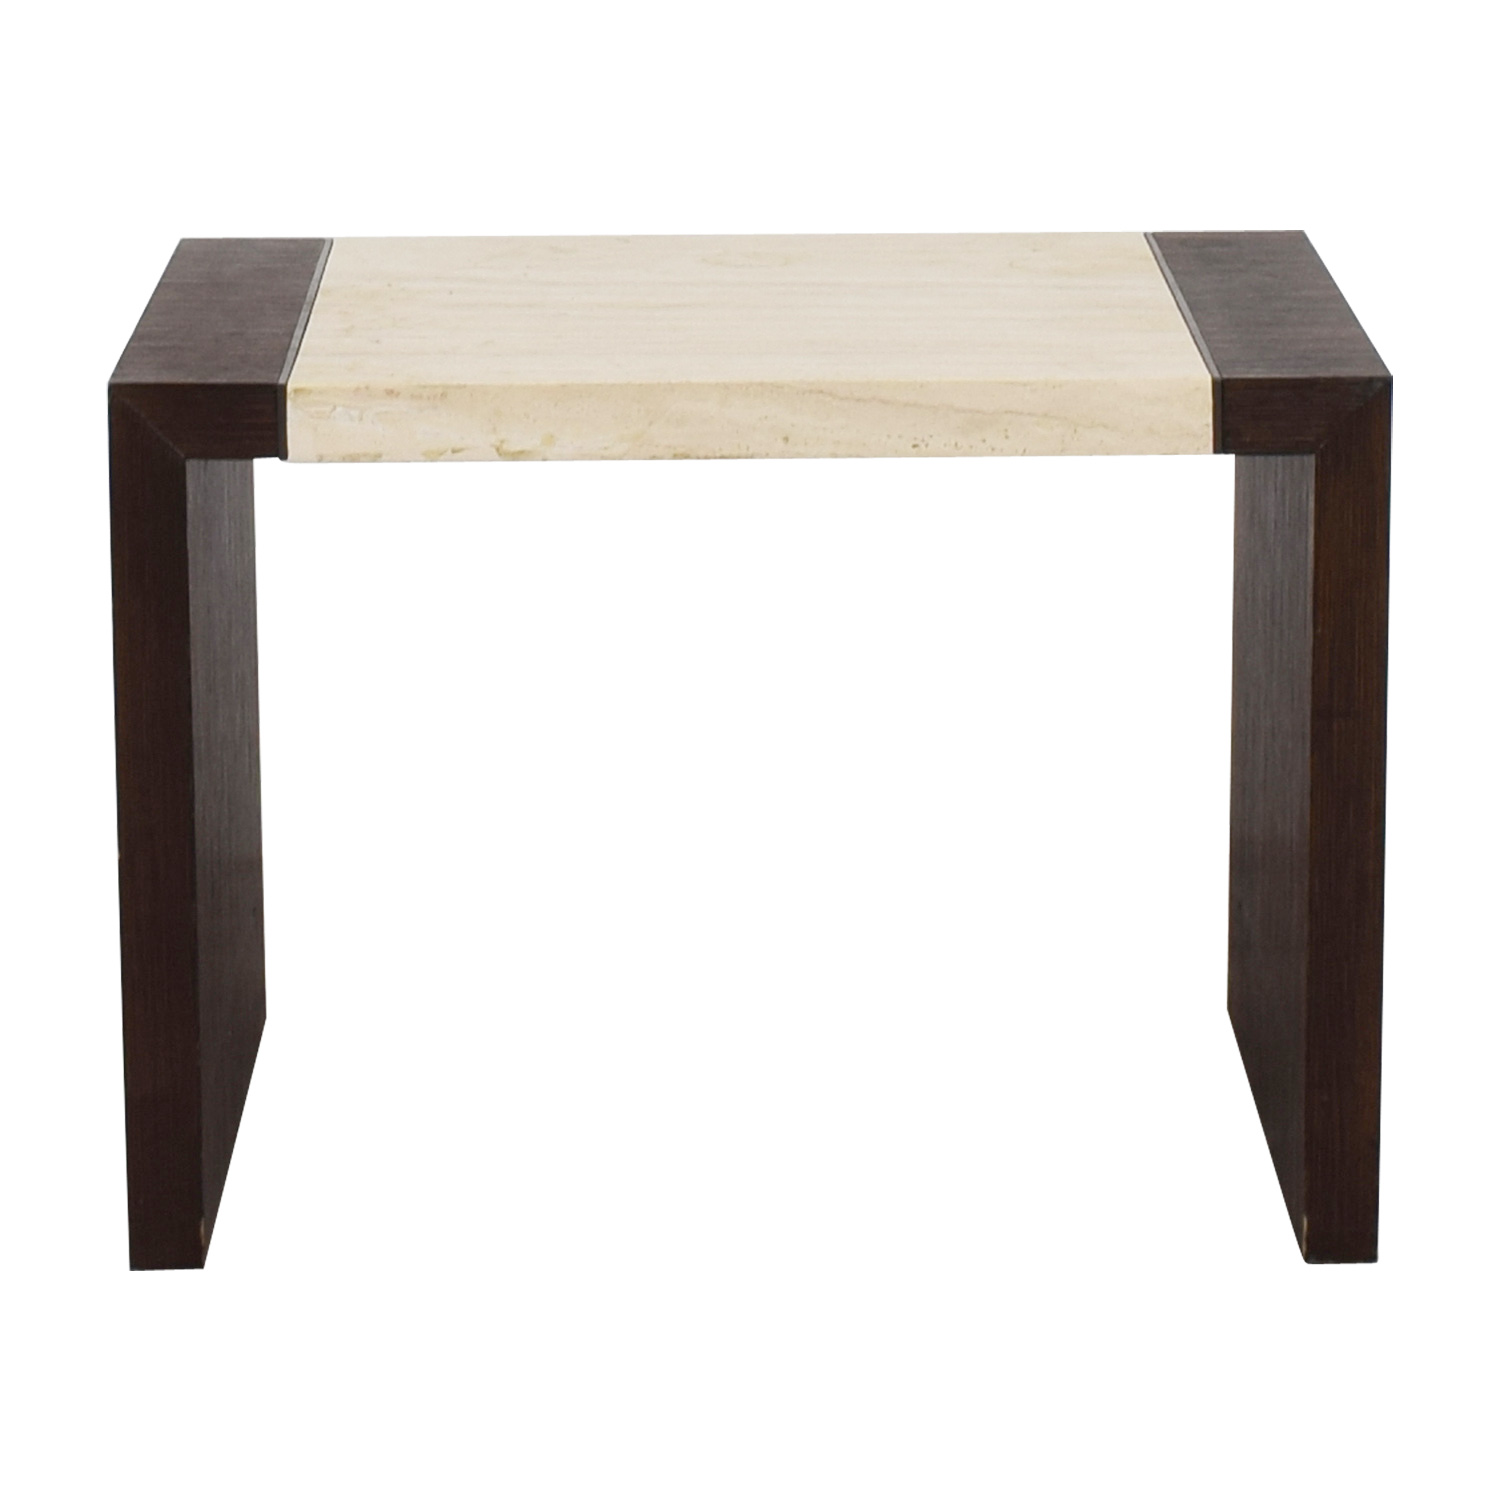 shop Calvin Klein Calvin Klein Wood and Stone End Table online